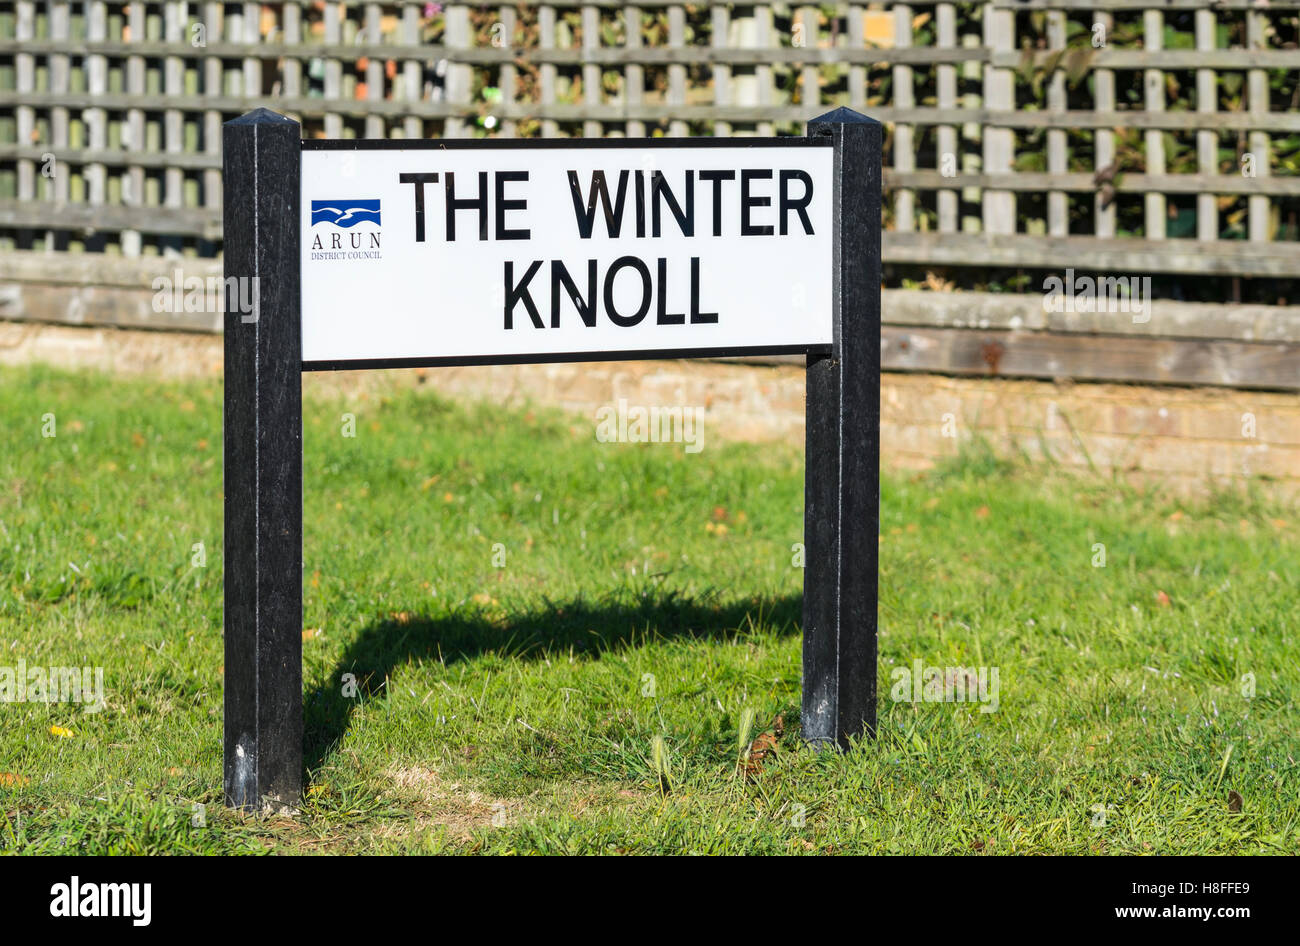 Street name sign on posts in the ground in the UK. - Stock Image